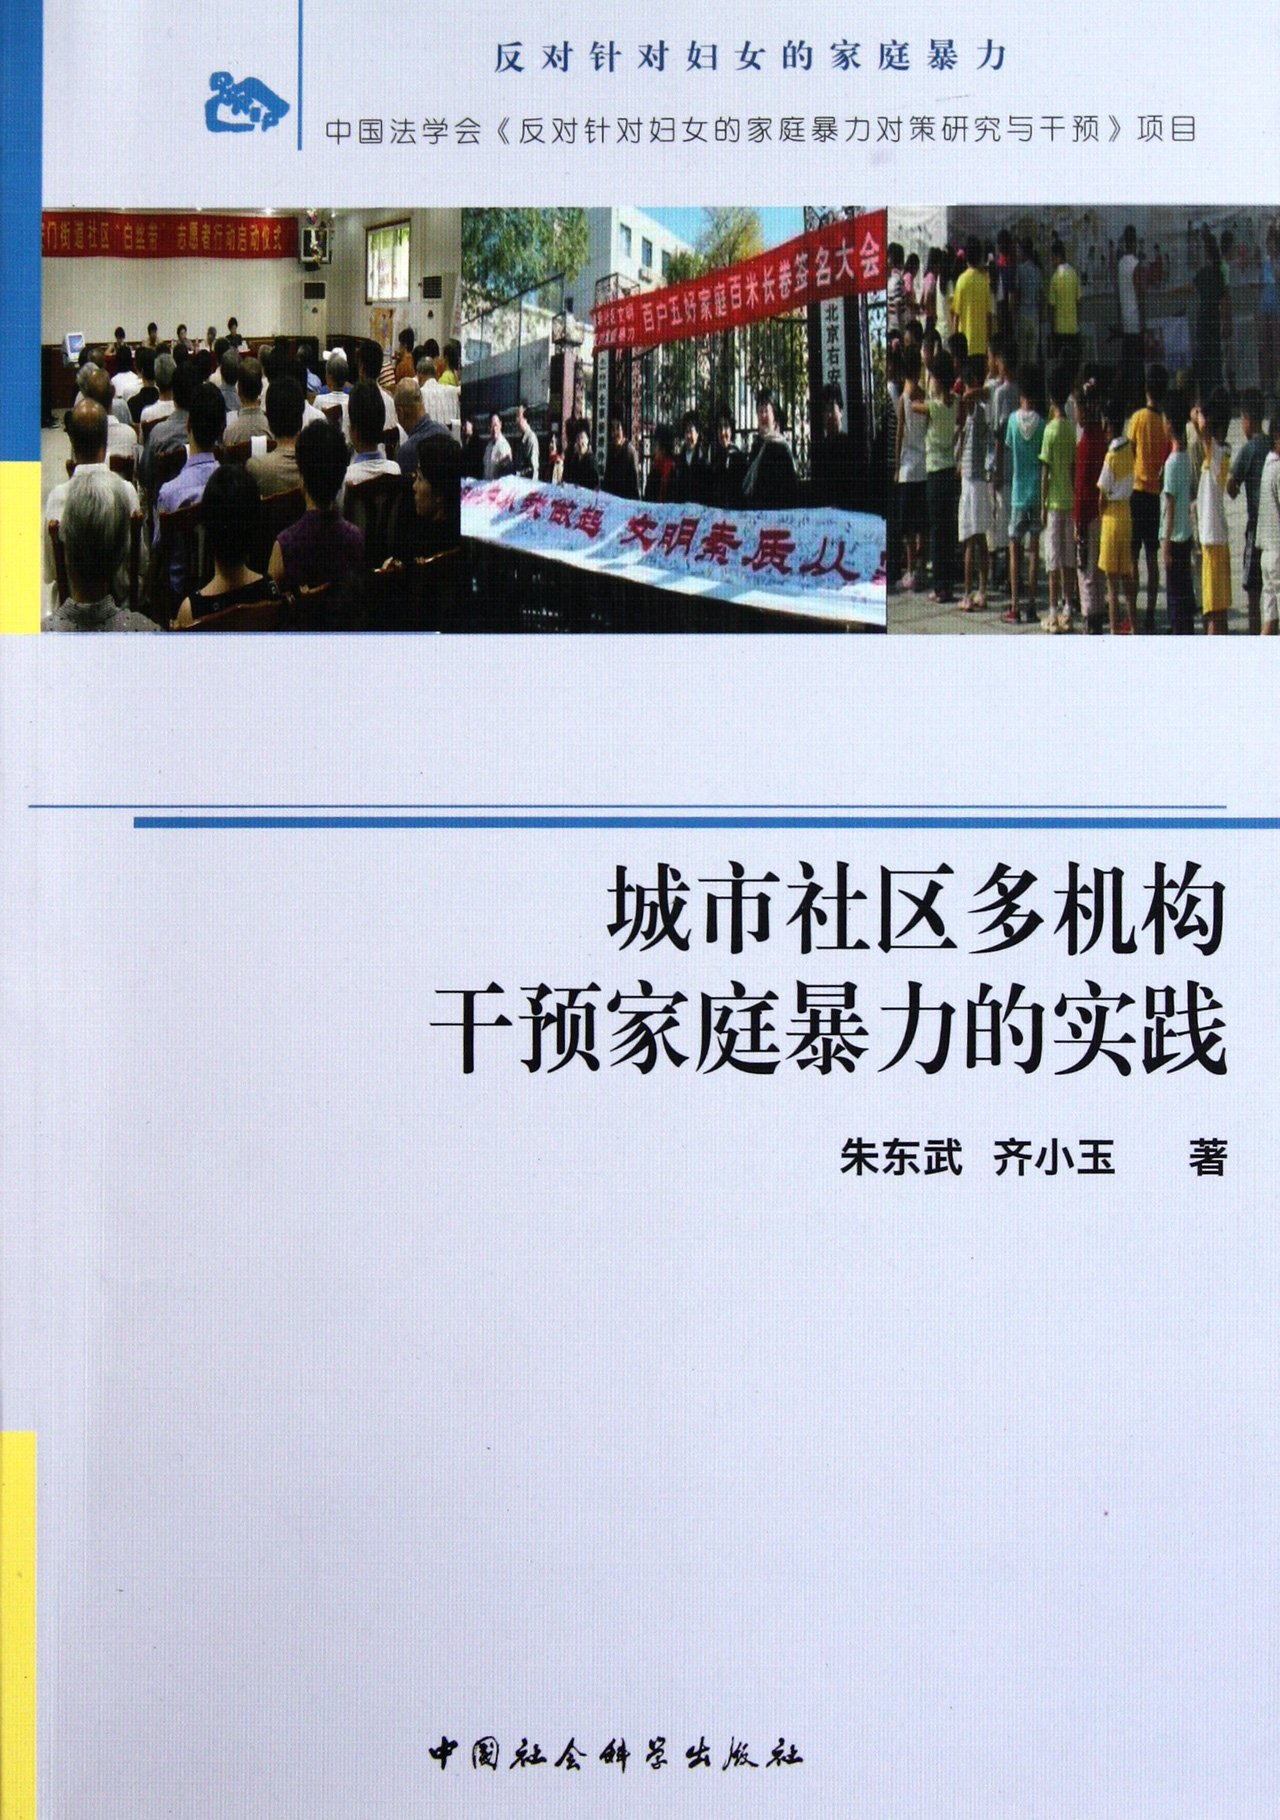 Read Online The practice of urban communities multi-agency intervention in domestic violence(Chinese Edition) pdf epub